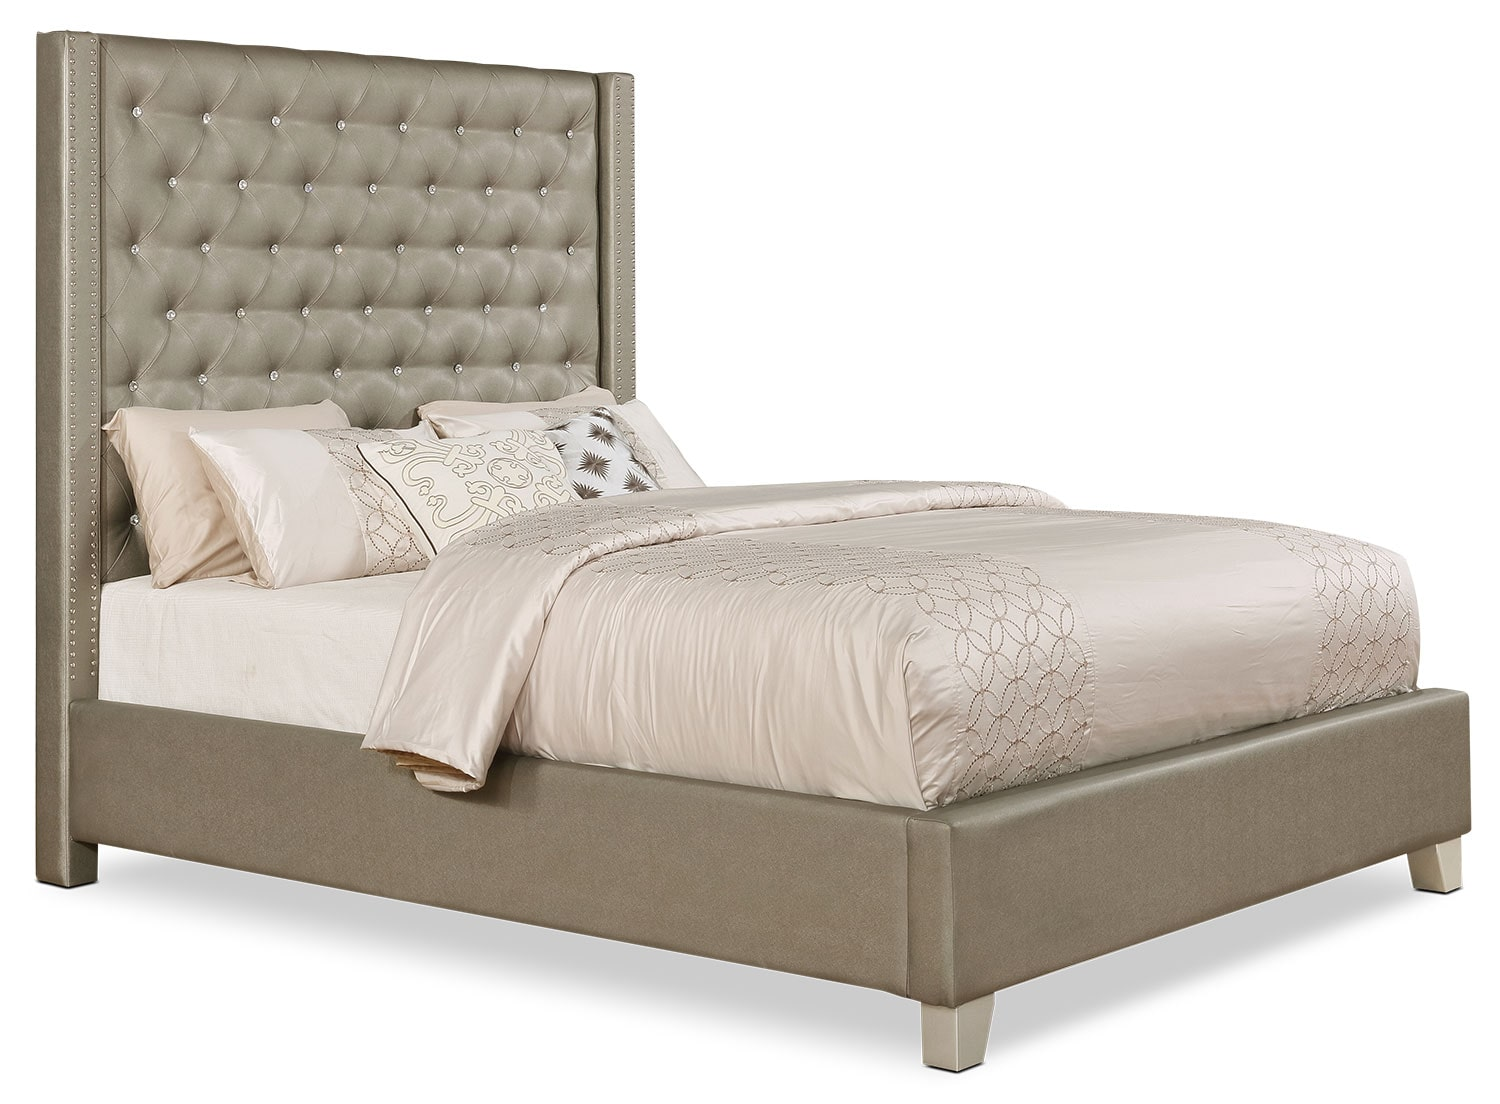 Diva Faux Leather Queen Bed